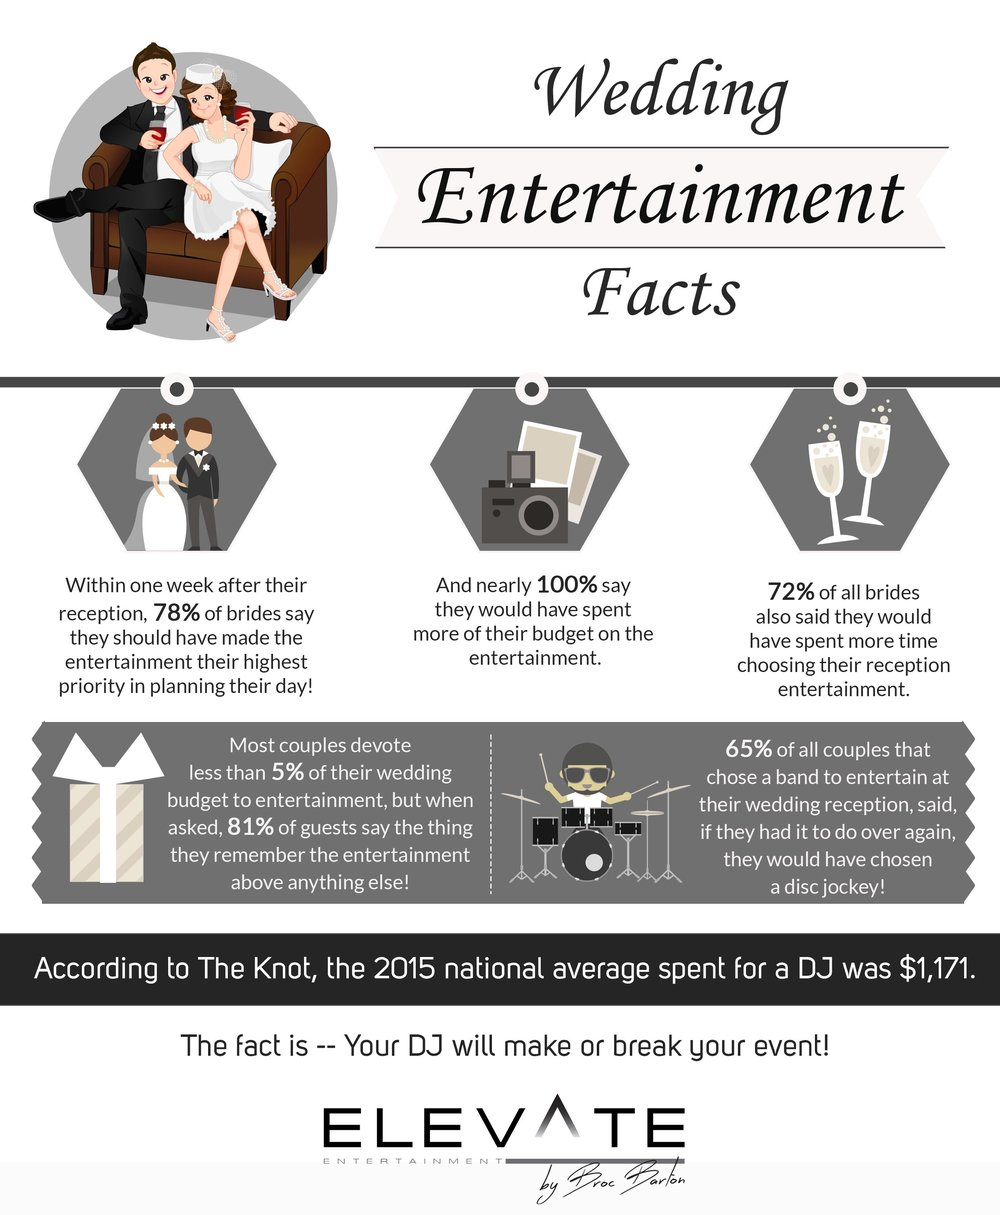 Wedding Entertainment Facts